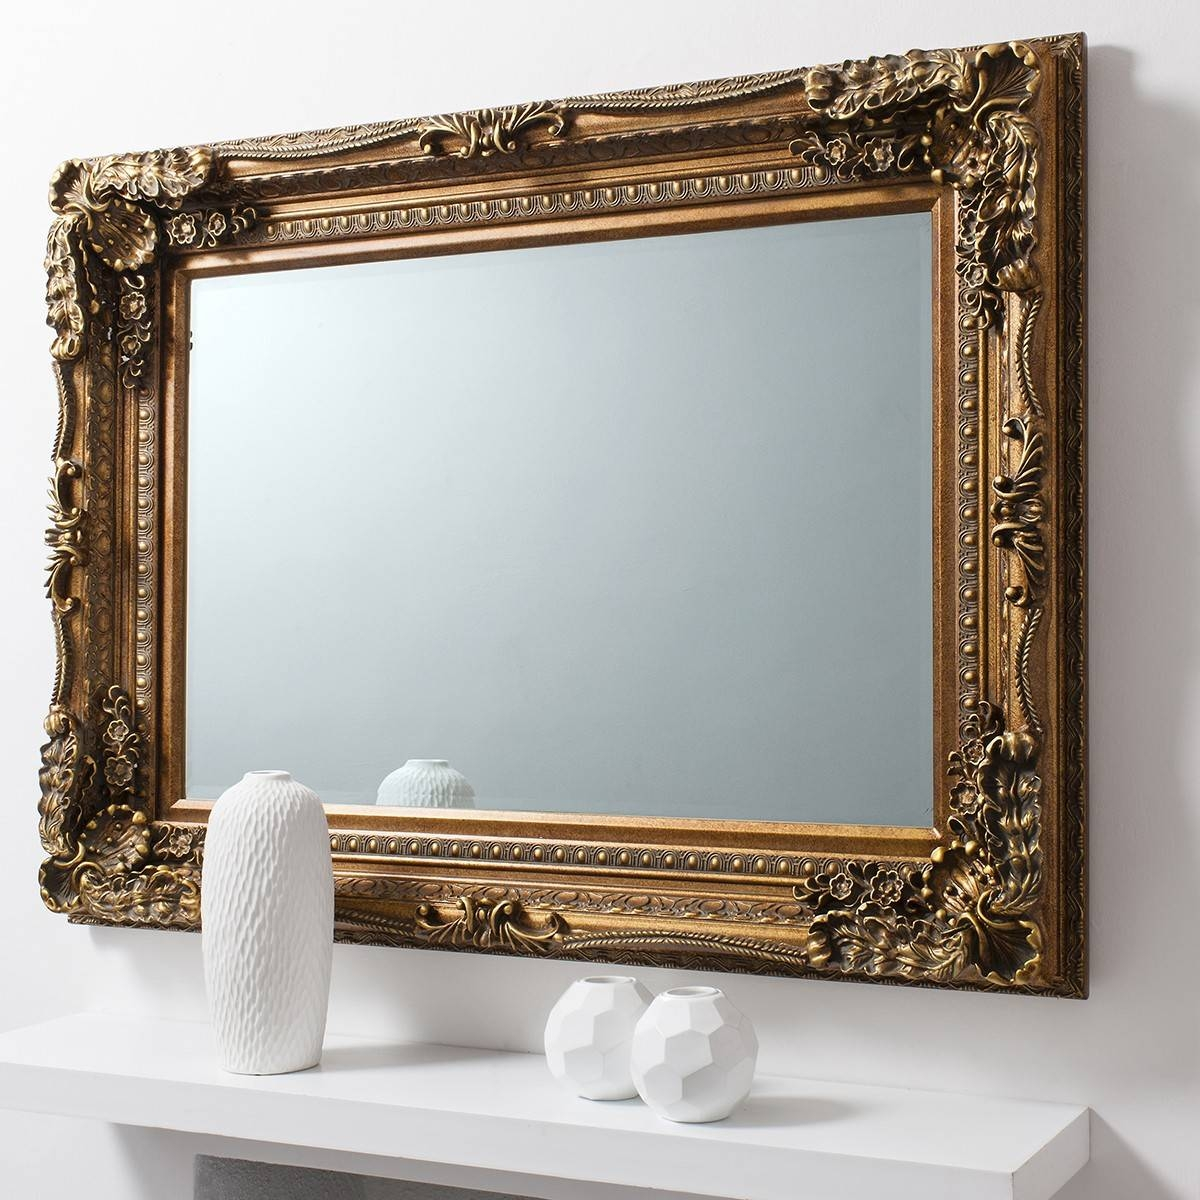 Versailles Baroque Mirror From £249 - Luxury Wall Mirrors | Ashden with regard to Baroque Wall Mirrors (Image 13 of 15)